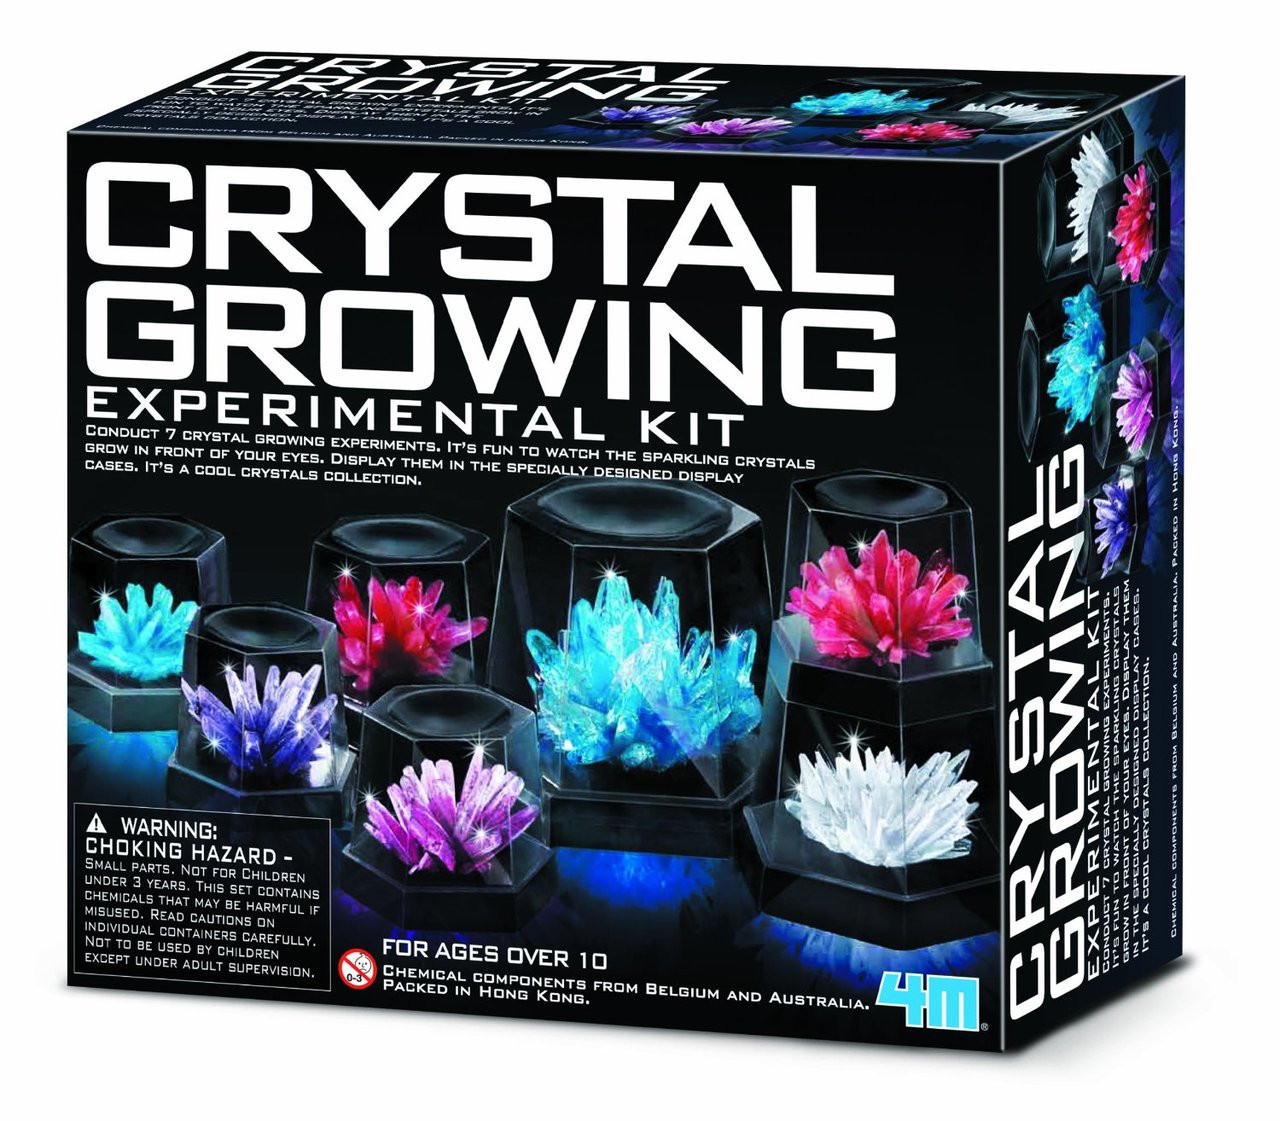 crystal growing experimental kit instructions 4m